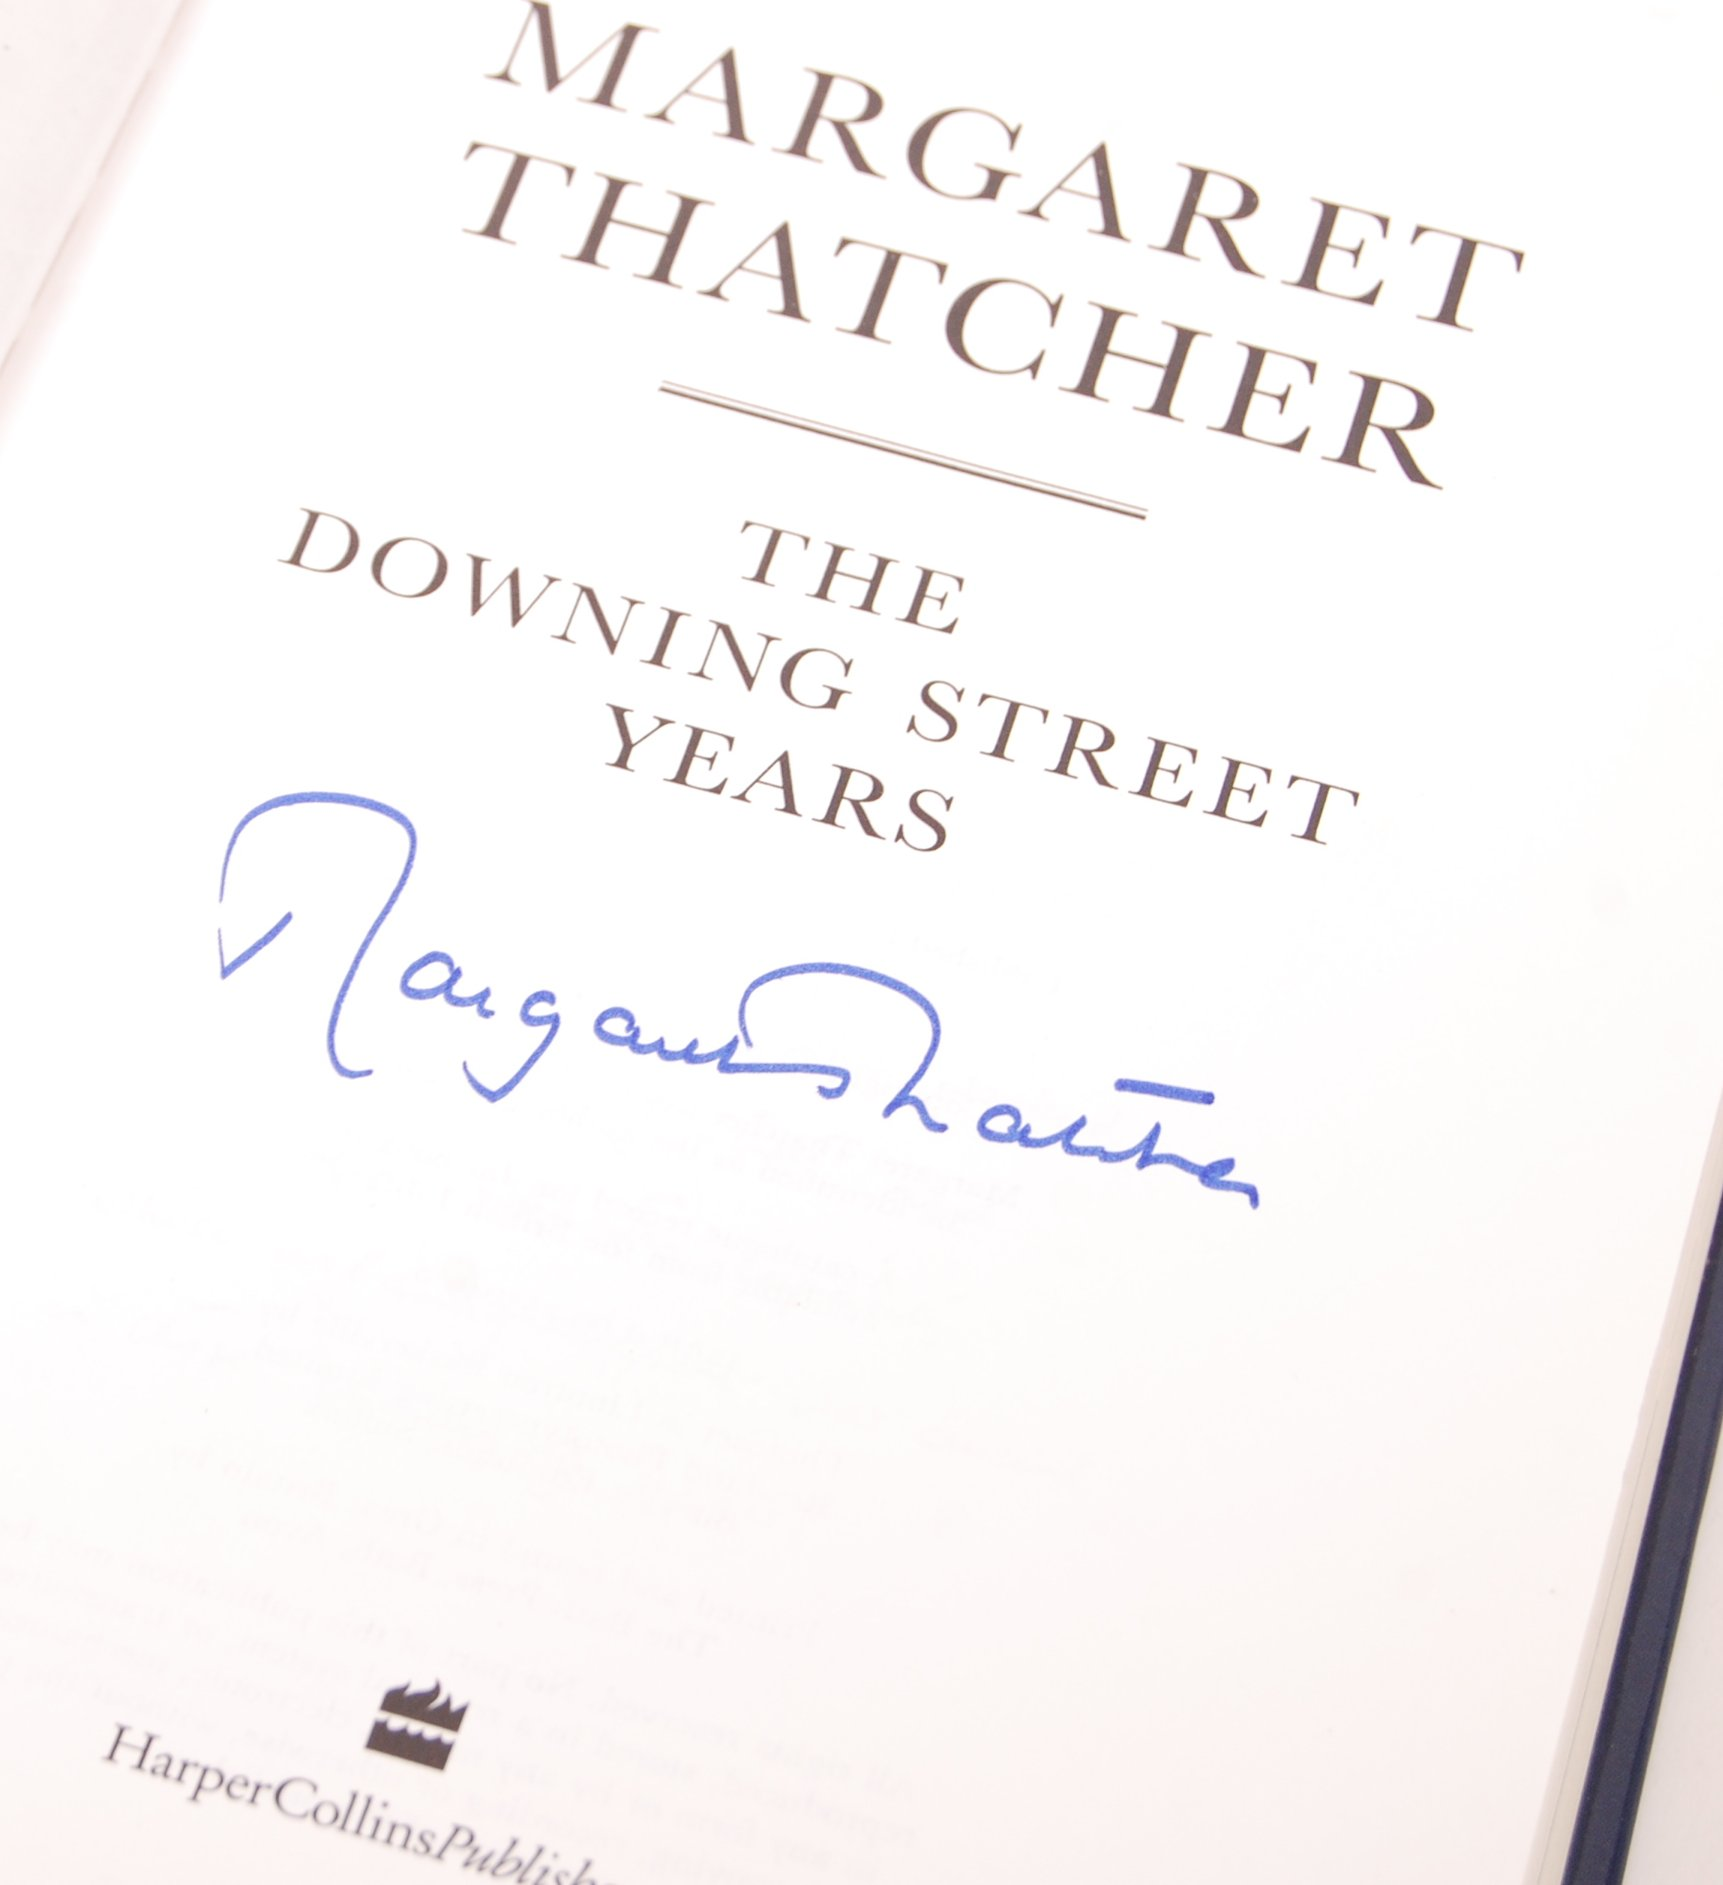 MARGARET THATCHER PRIME MINISTER ' THE DOWNING STREET YEARS ' SIGNED - Image 3 of 3